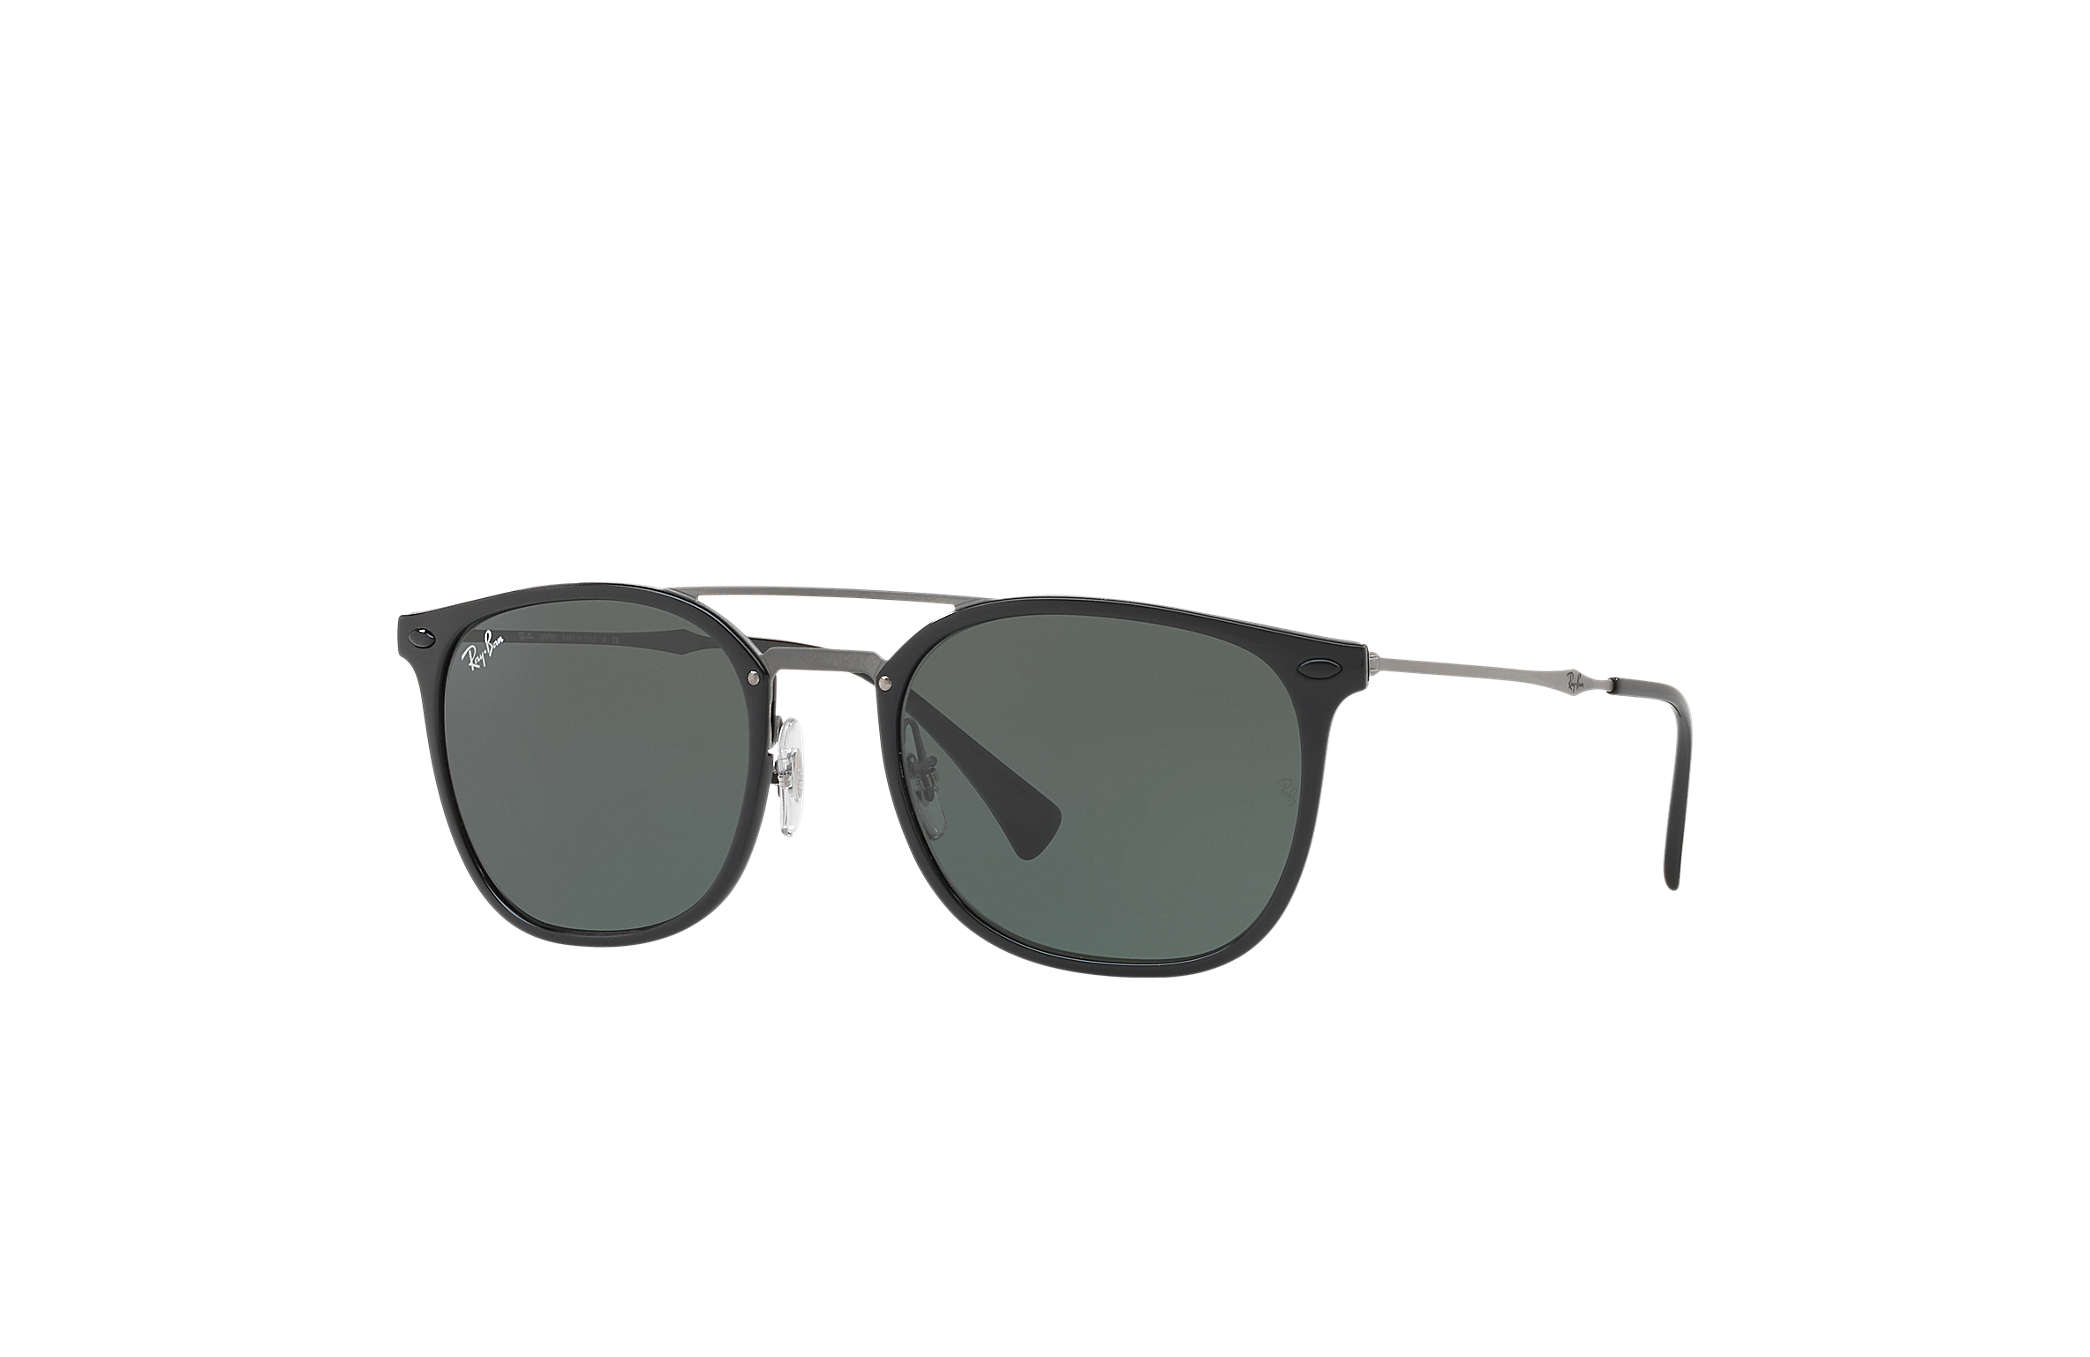 f1747d37905df Ray-Ban RB4286 Nero - Injected - Lenti Verde - 0RB4286601 7155